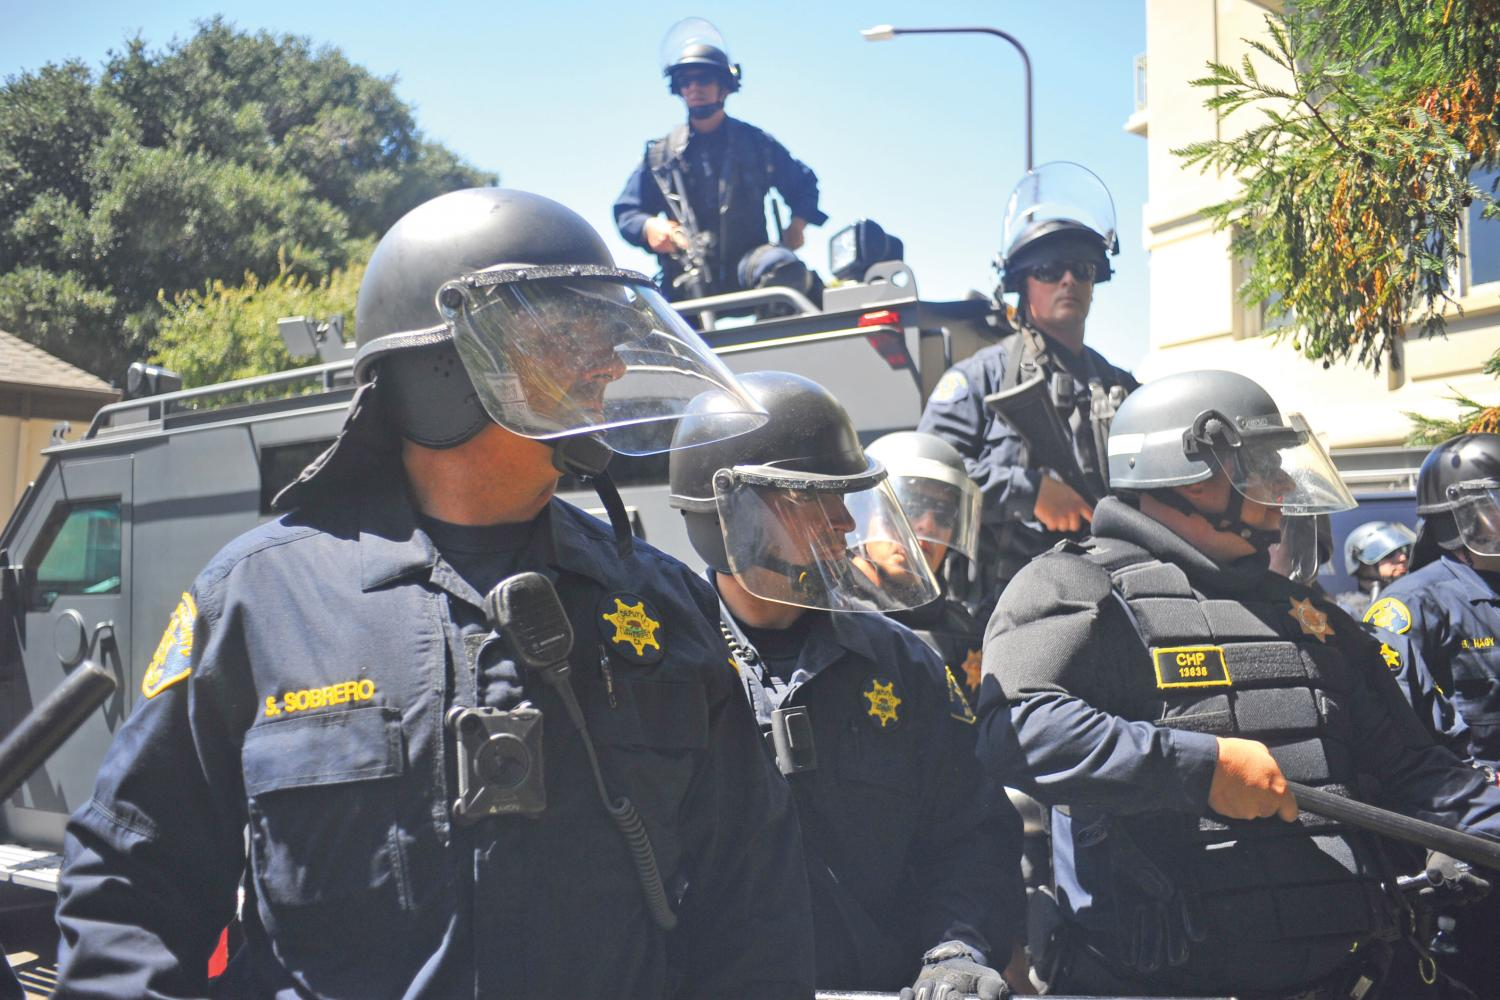 Berkeley police officers form a line in front of a Mine- Resistant Ambush Protected (MRAP) vehi- cle during a protest at Martin Luther King Civic Center Park in Berkeley on Aug. 27. Police depart- ments across the country have begun to militarize their tactical units.